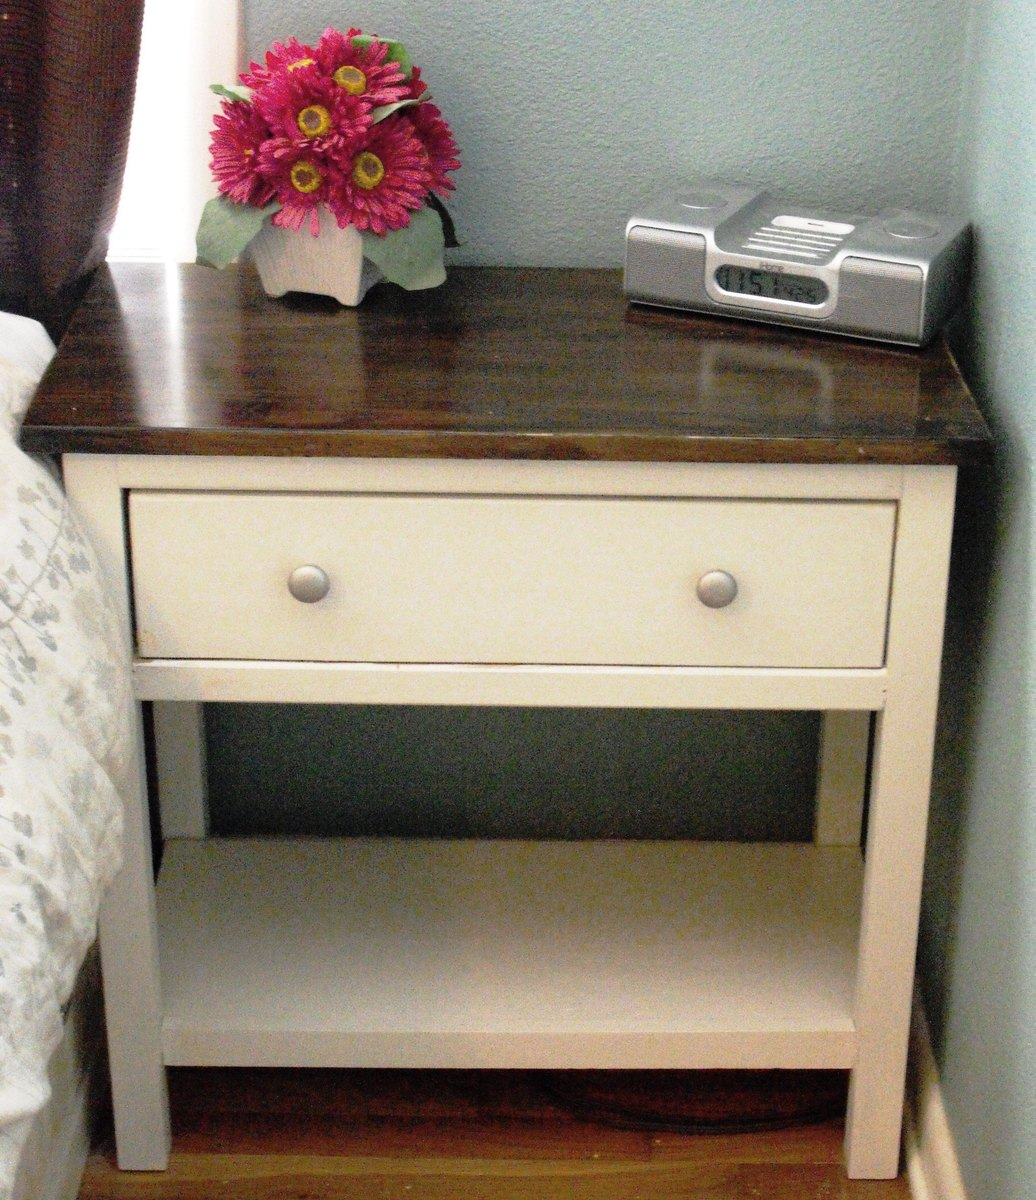 Bedside table design plans - Bedside Table Design Plans 23